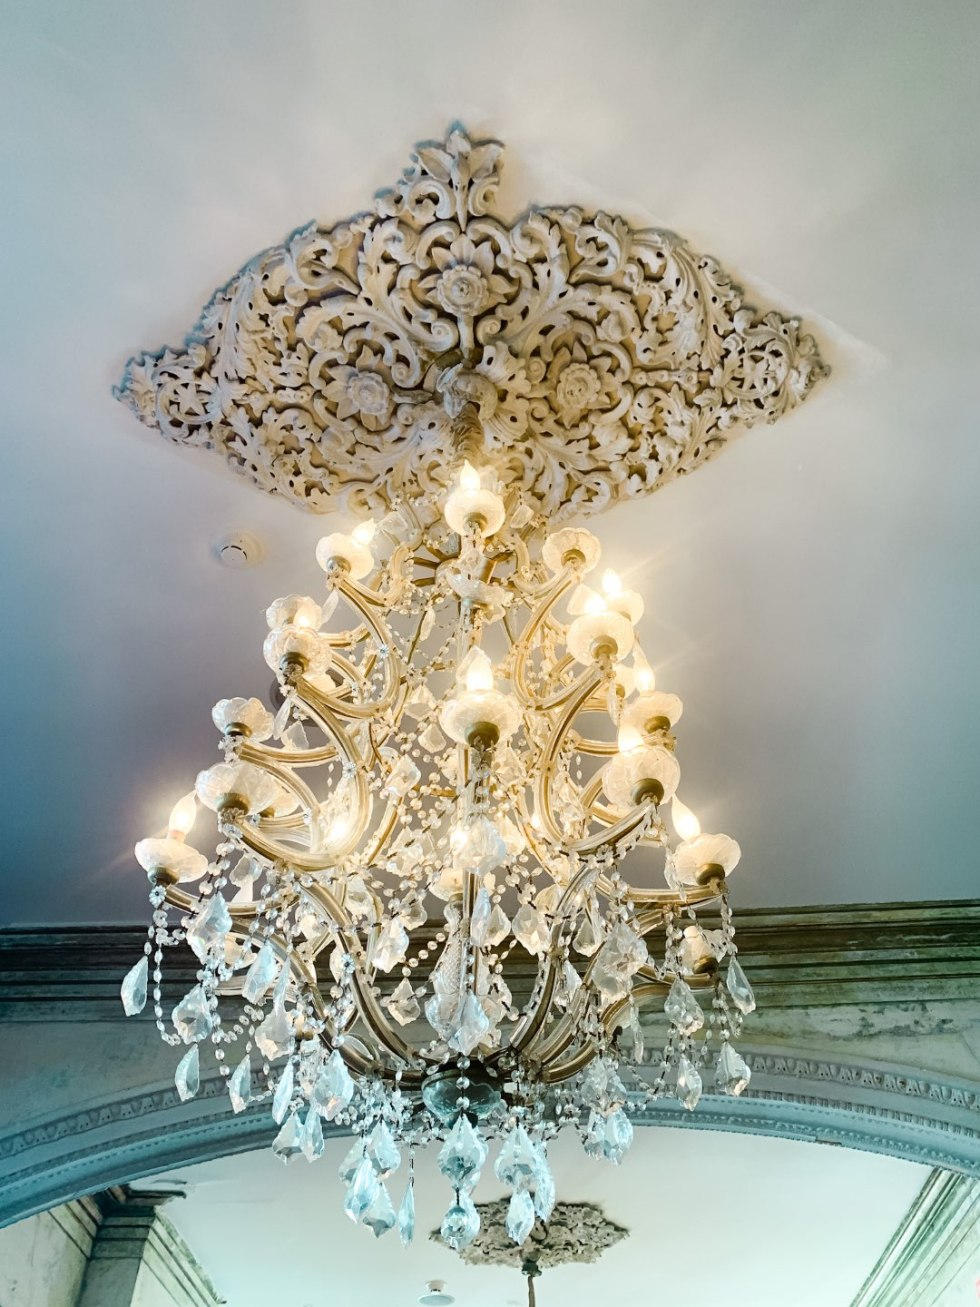 Girls Trip to New Orleans by popular US travel blog, I'm Fixin To: image of a chandelier